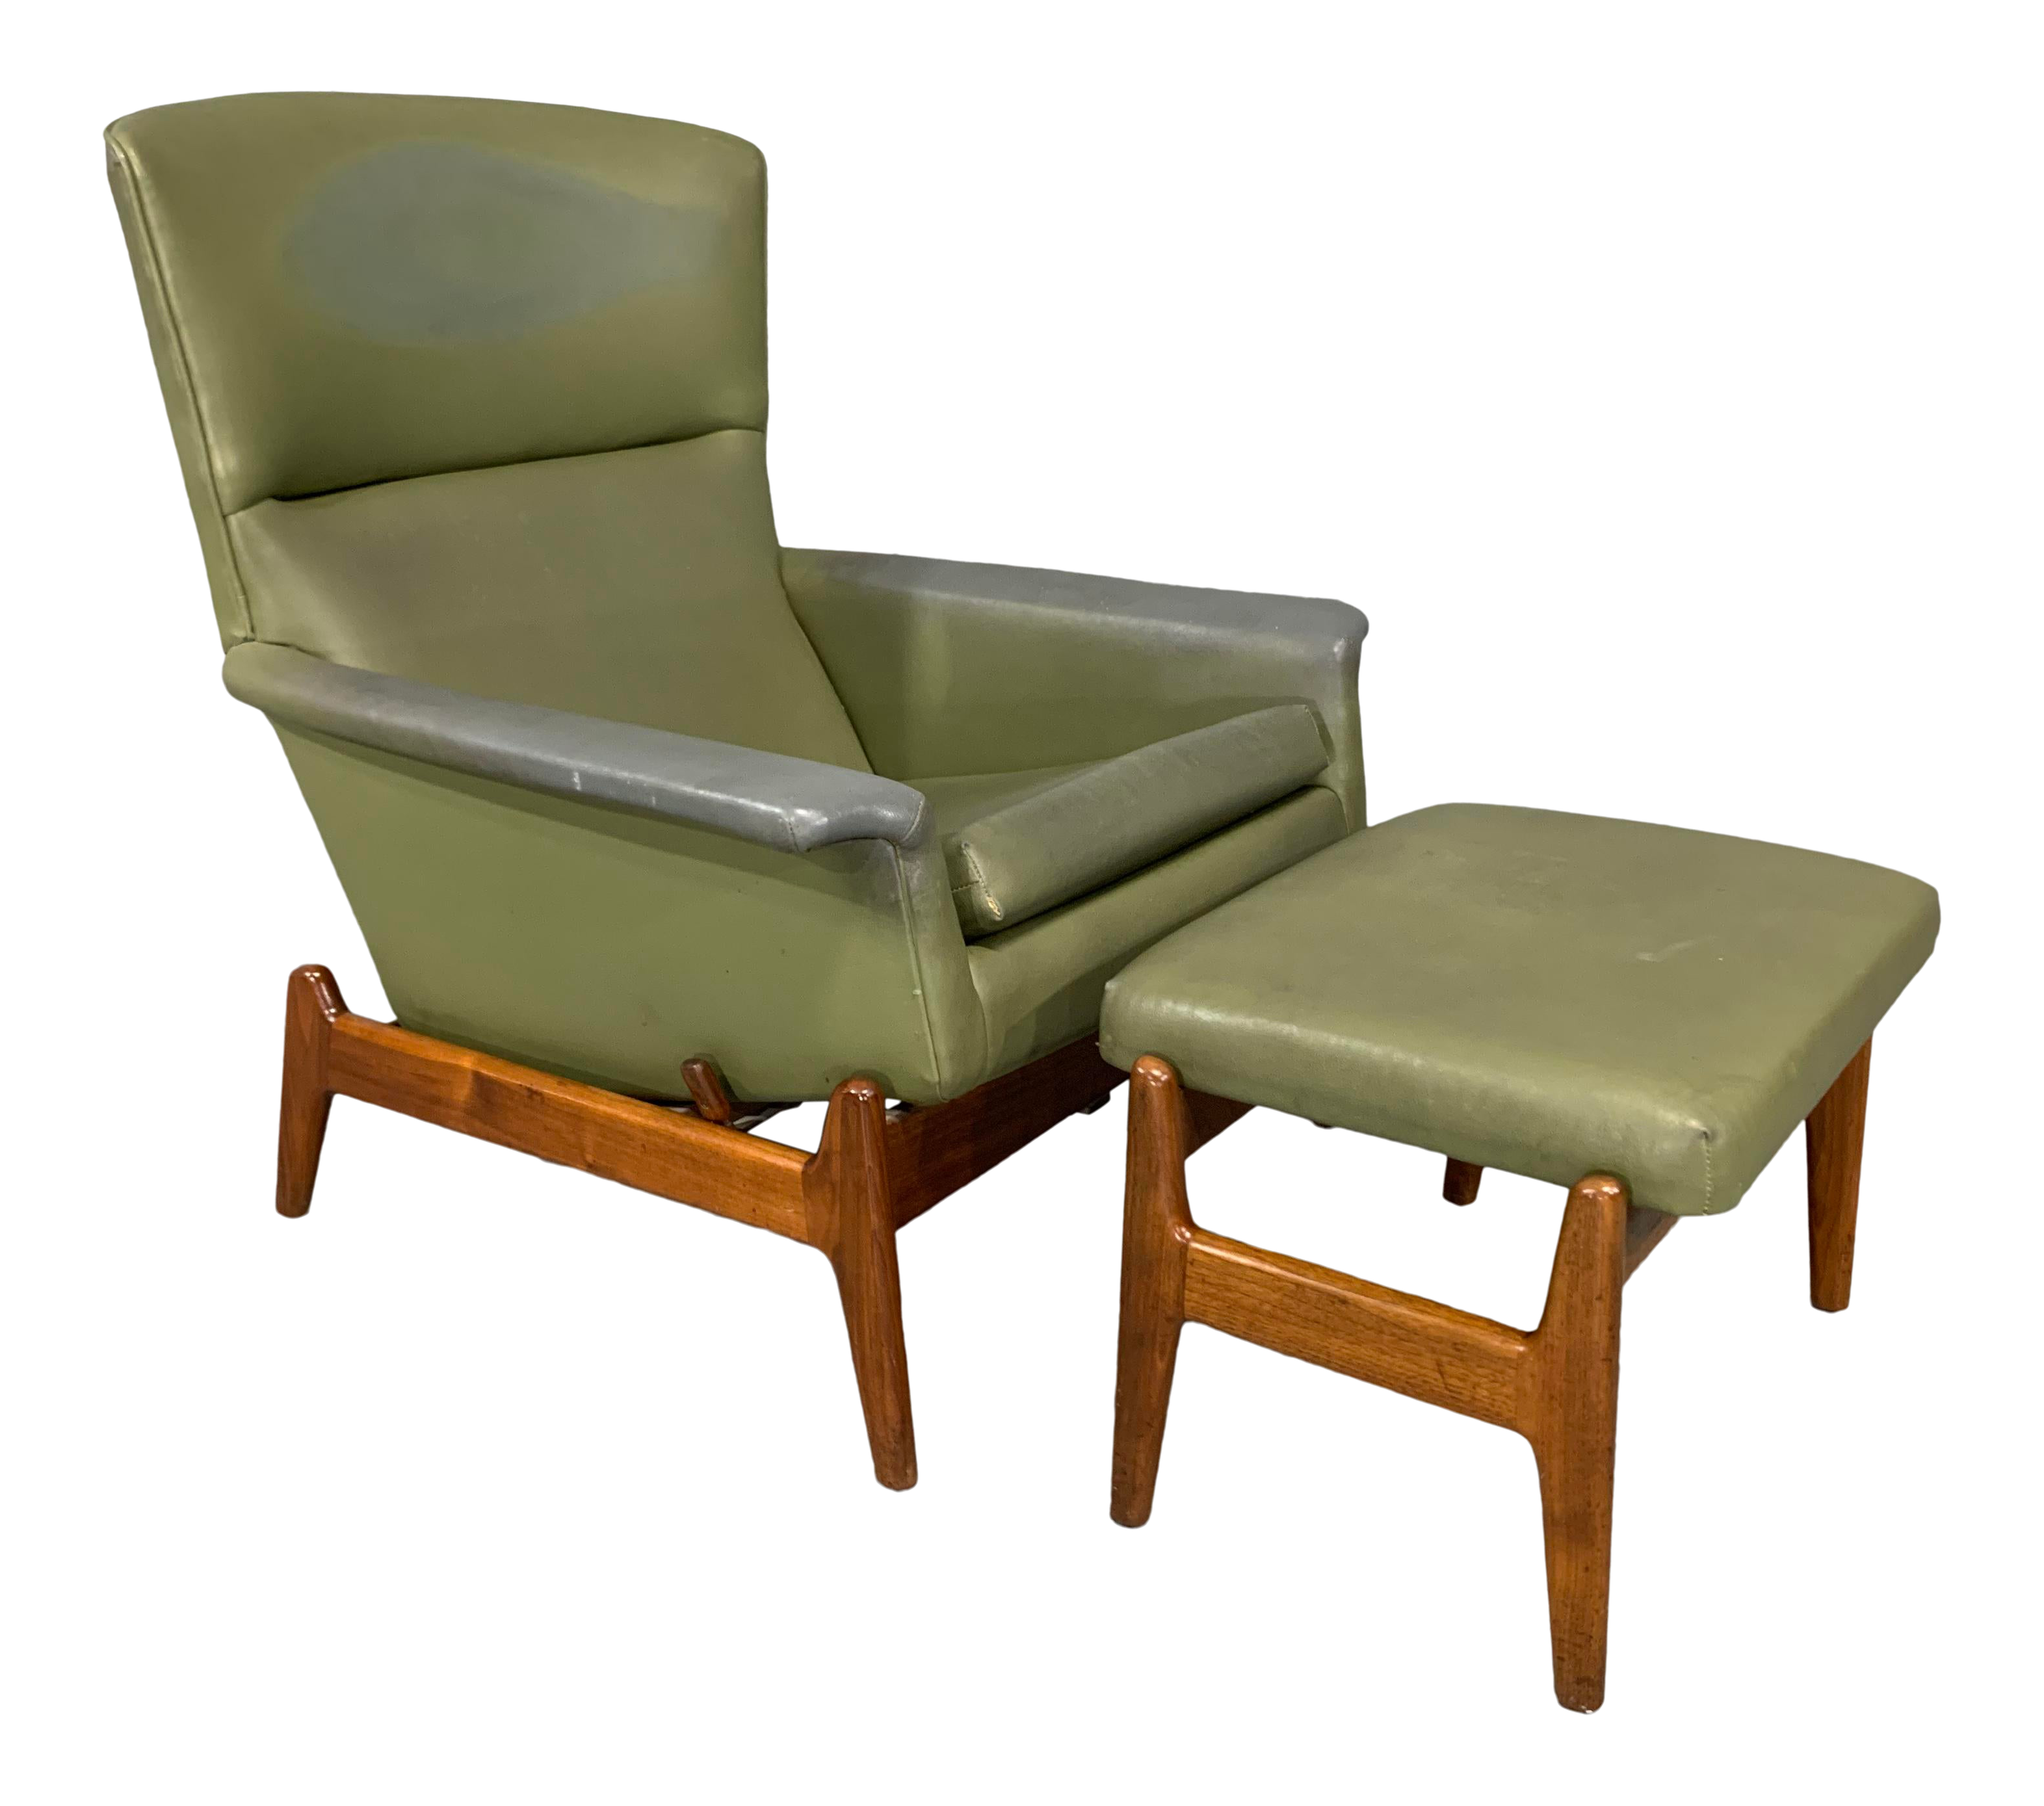 mid century modern recliner and ottoman by folke ohlsson for dux in teak a pair